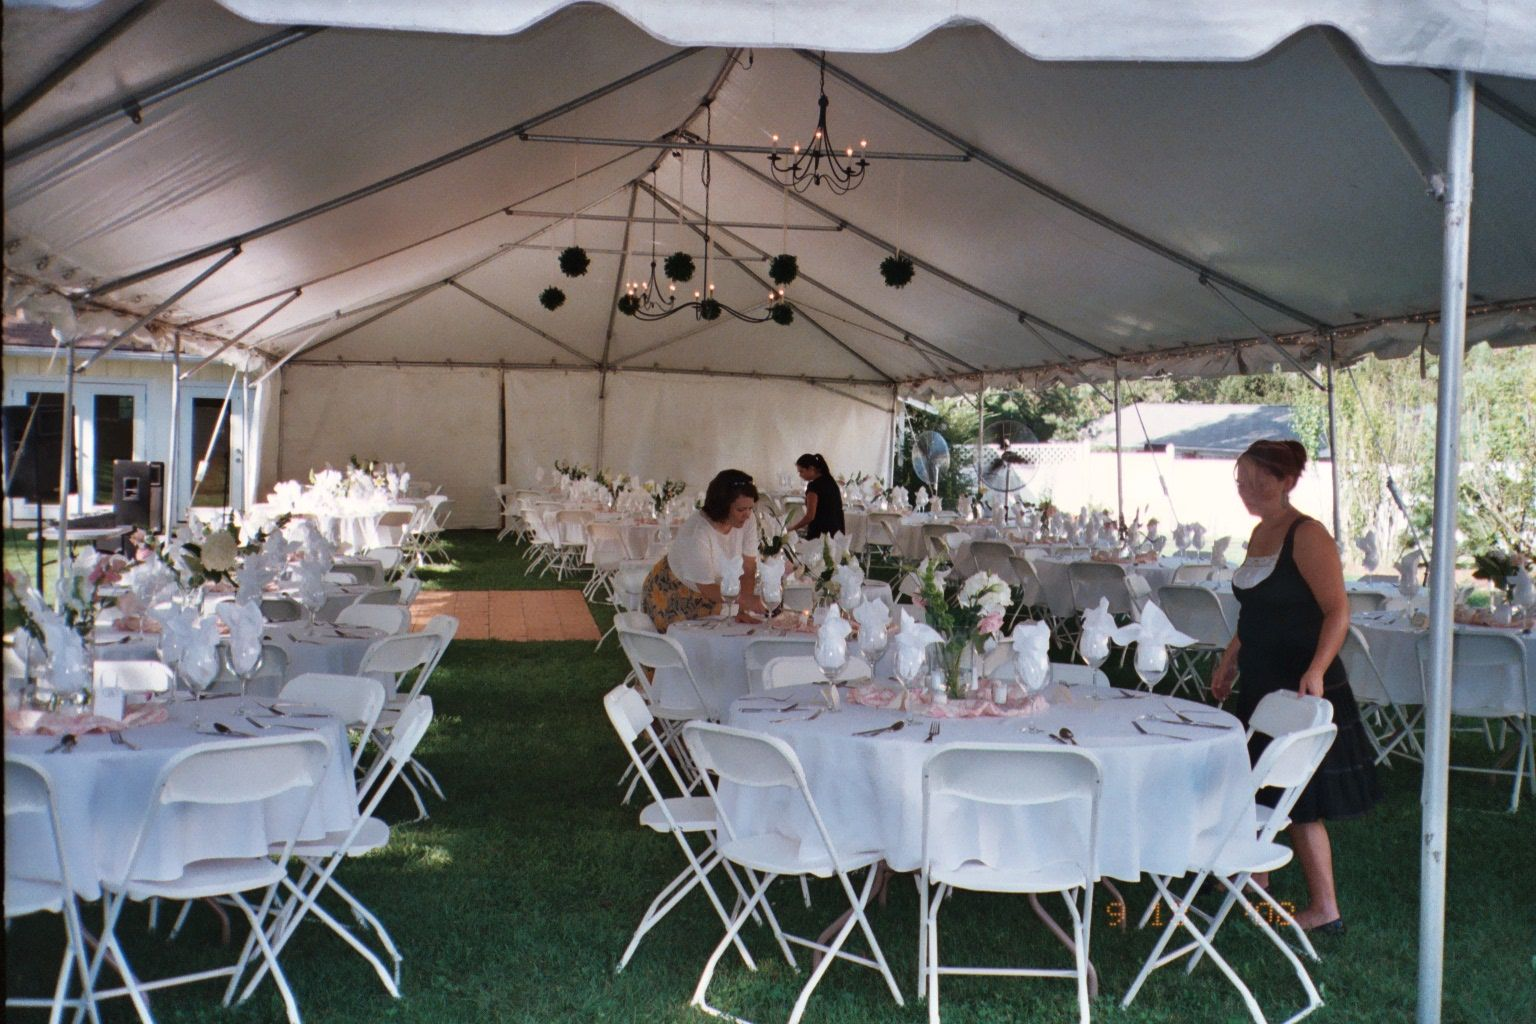 Outdoor Tent Decorating Ideas Basic Tent Setup With